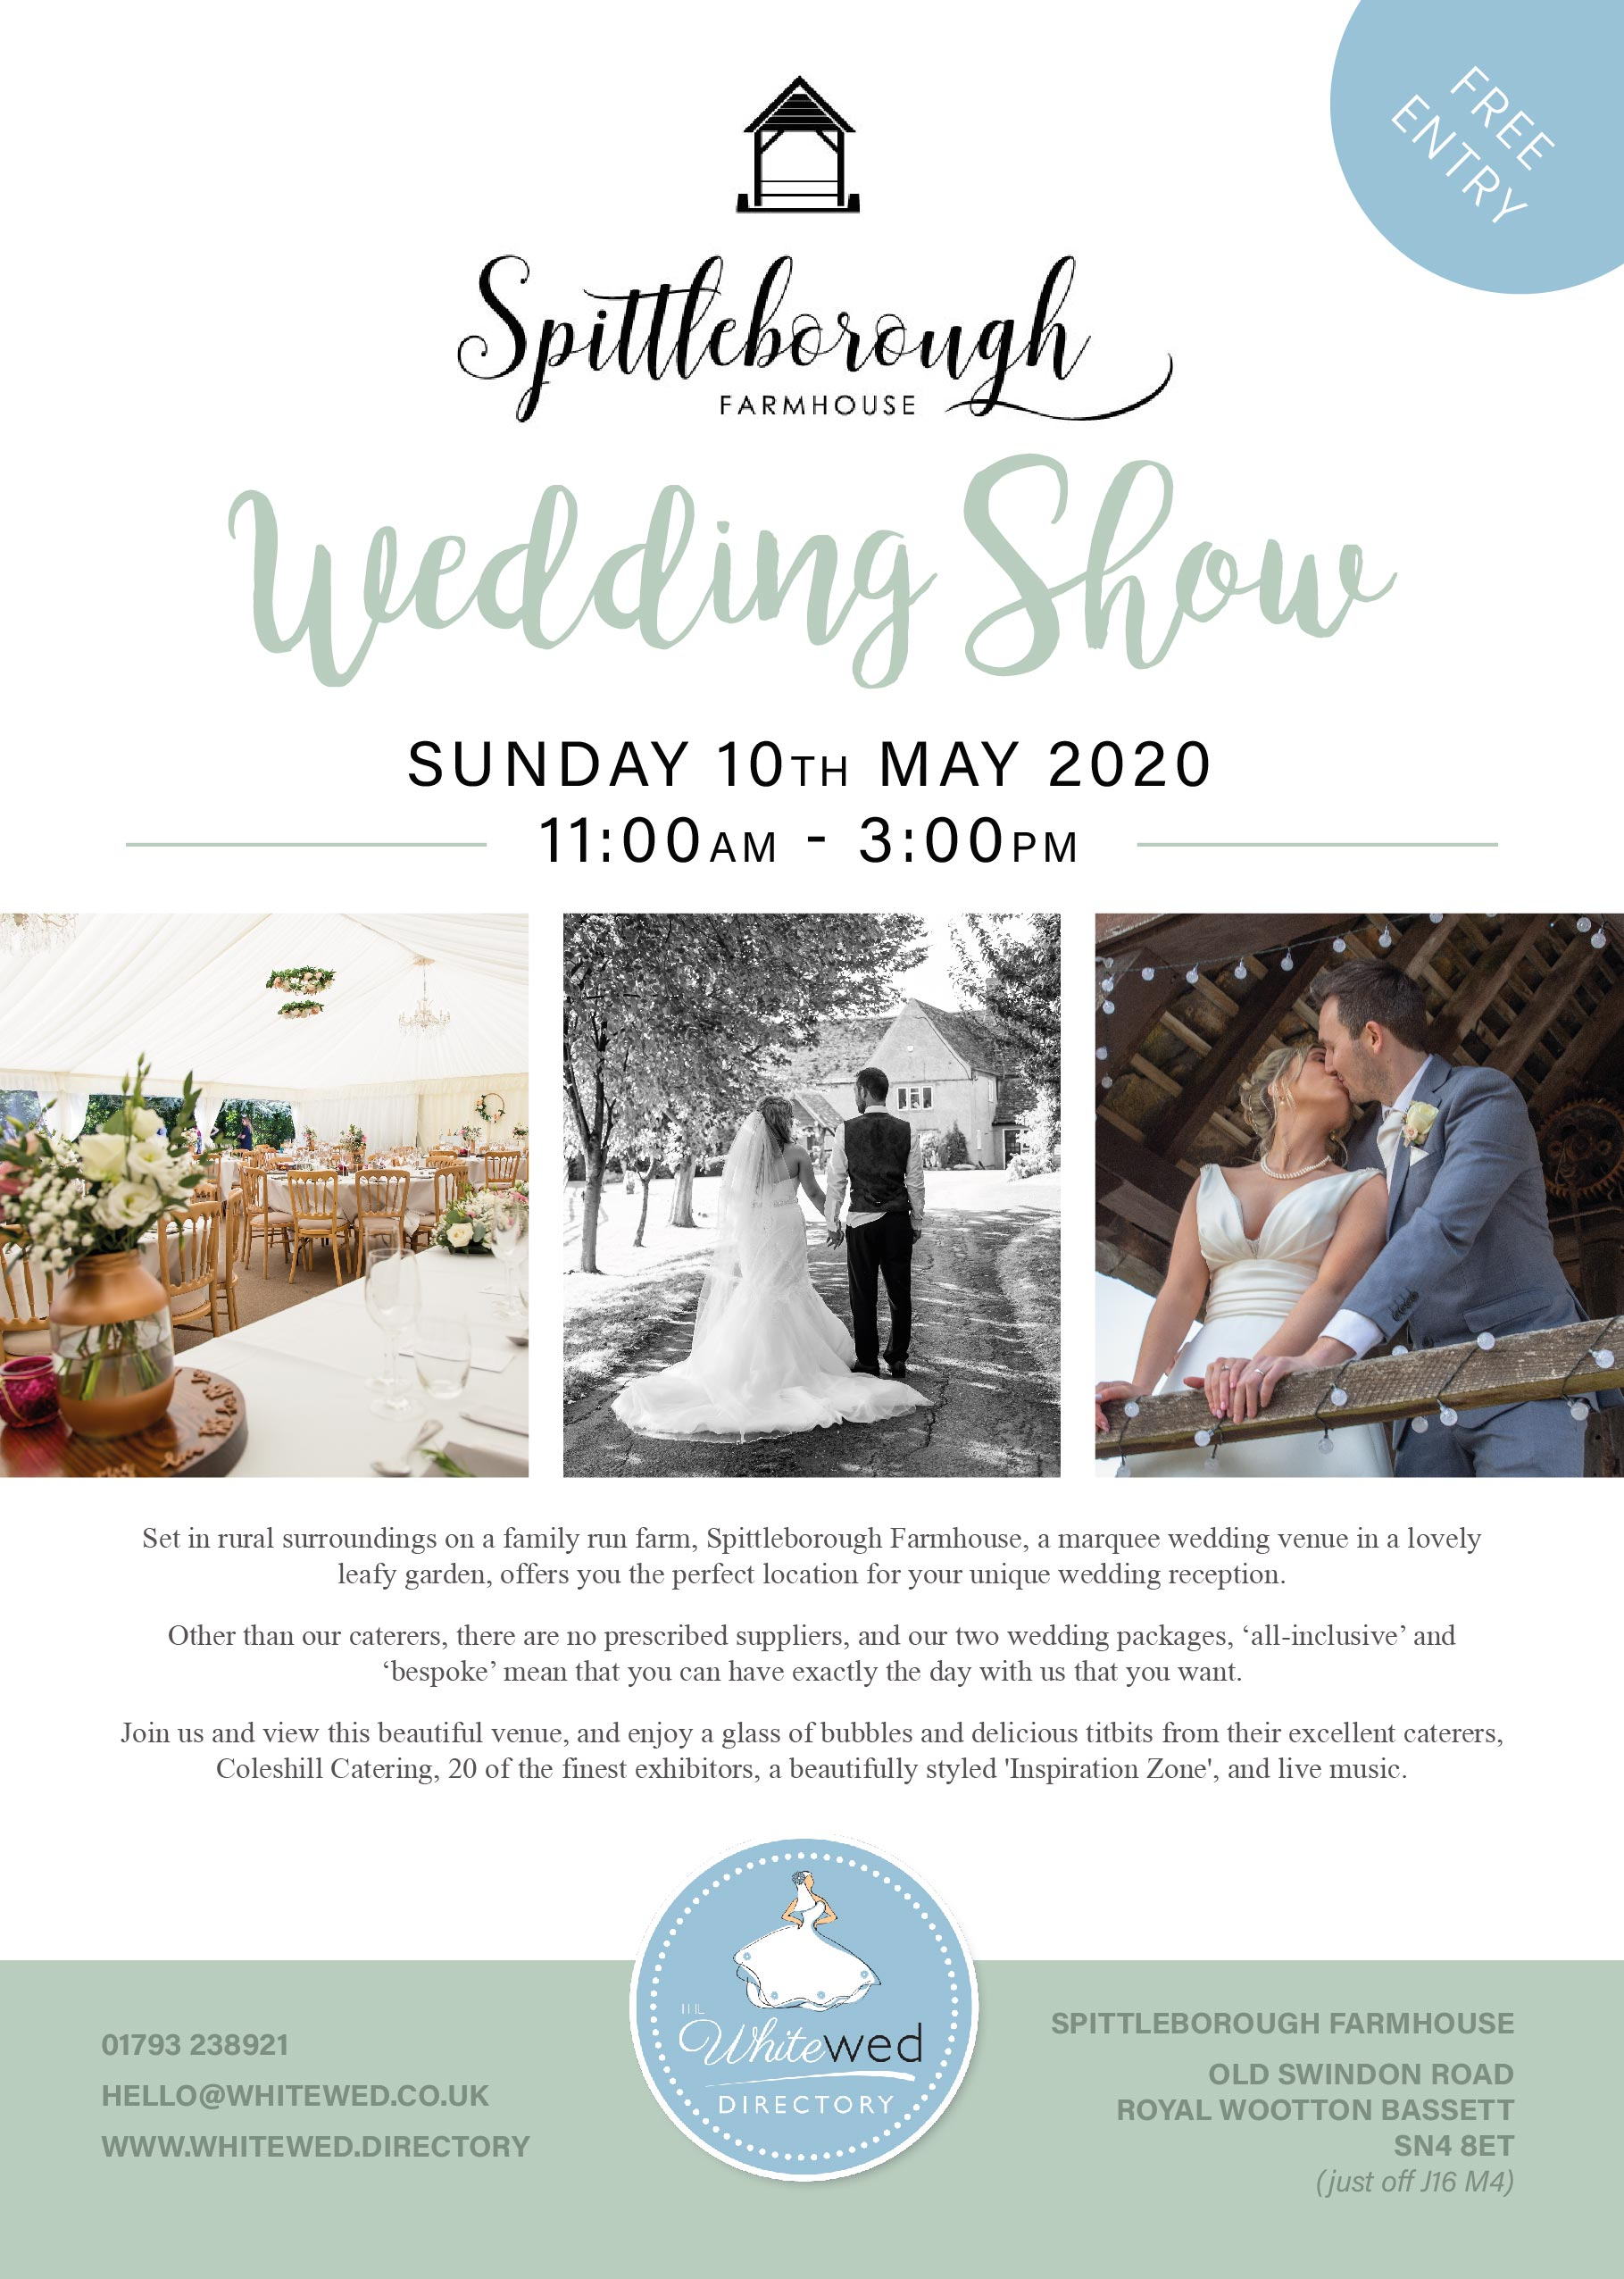 The Spittleborough Farmhouse Wedding Show